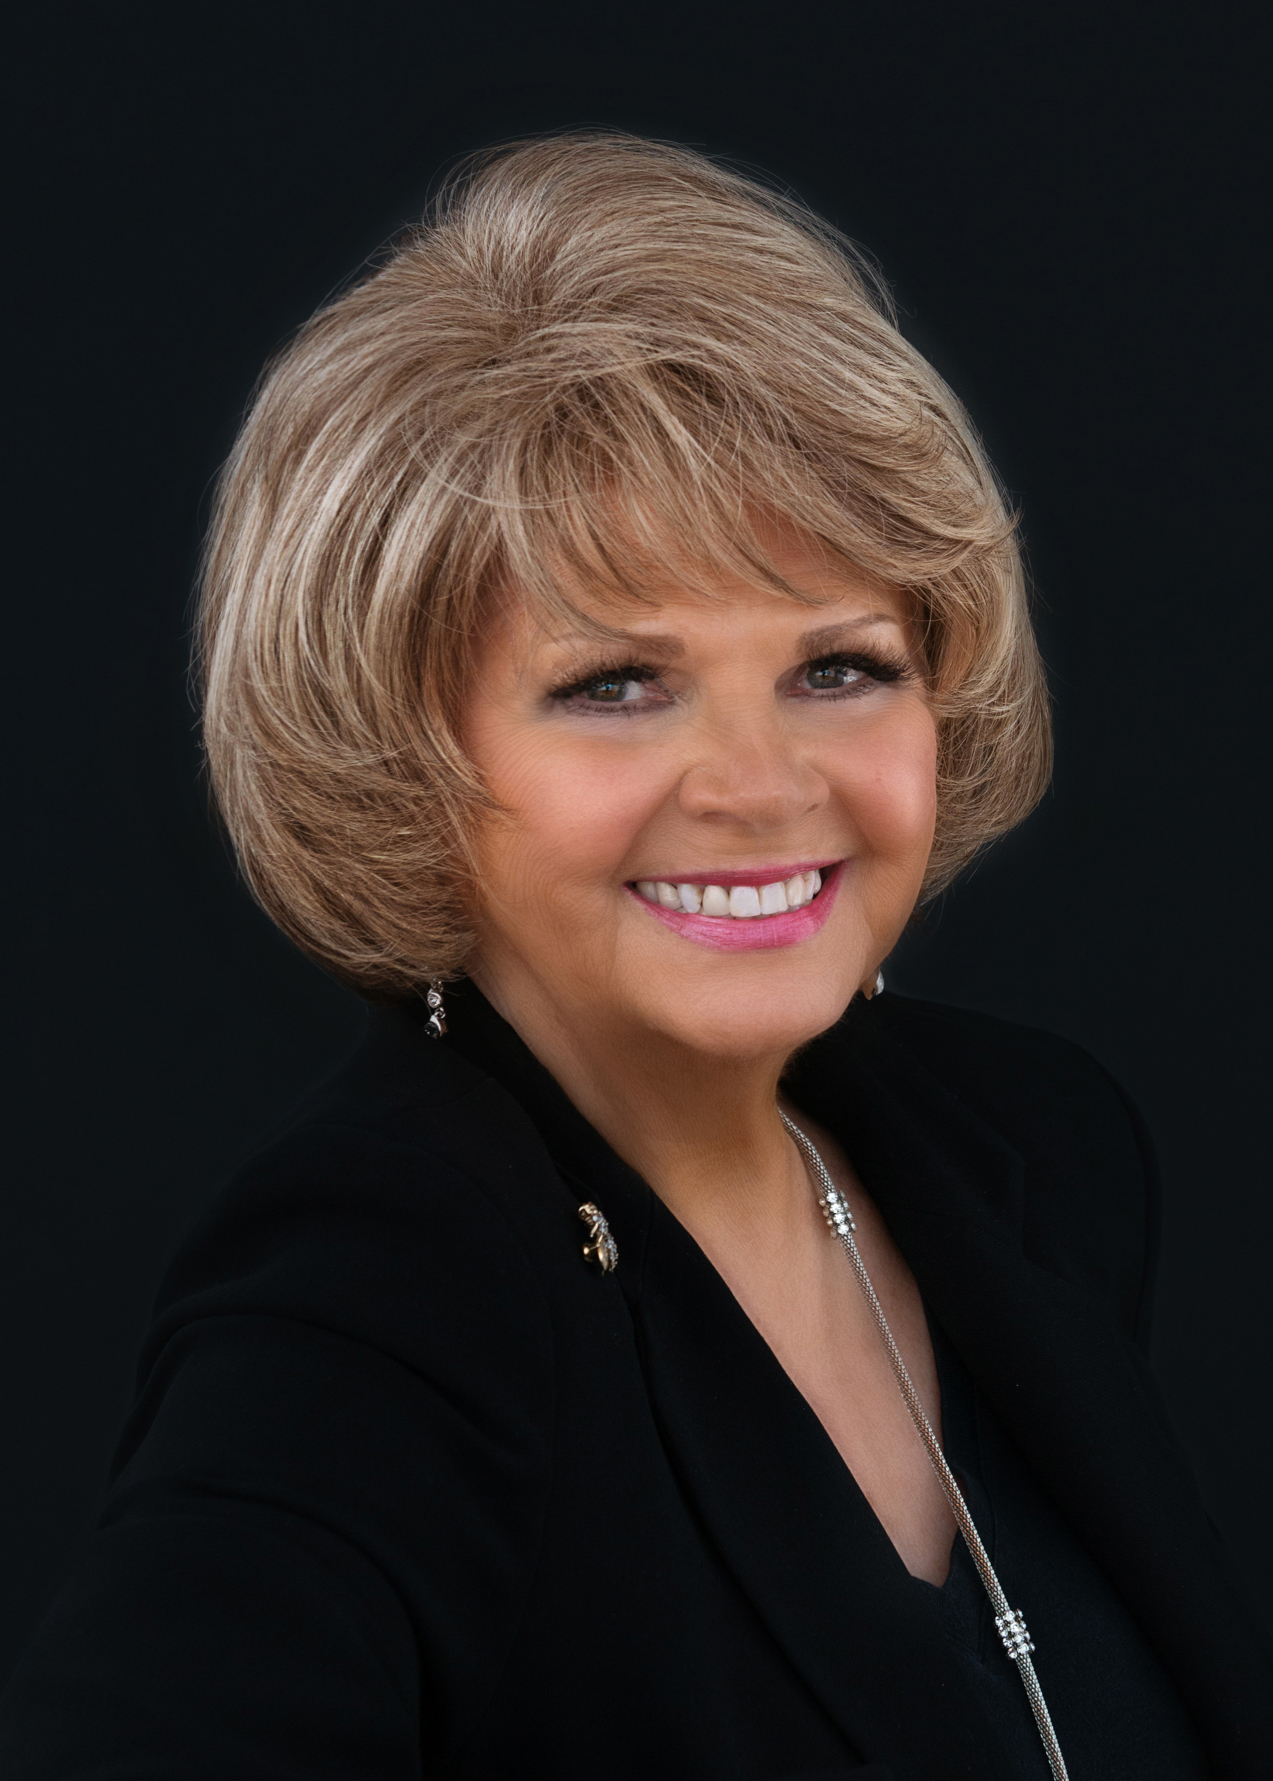 Connie Golihew